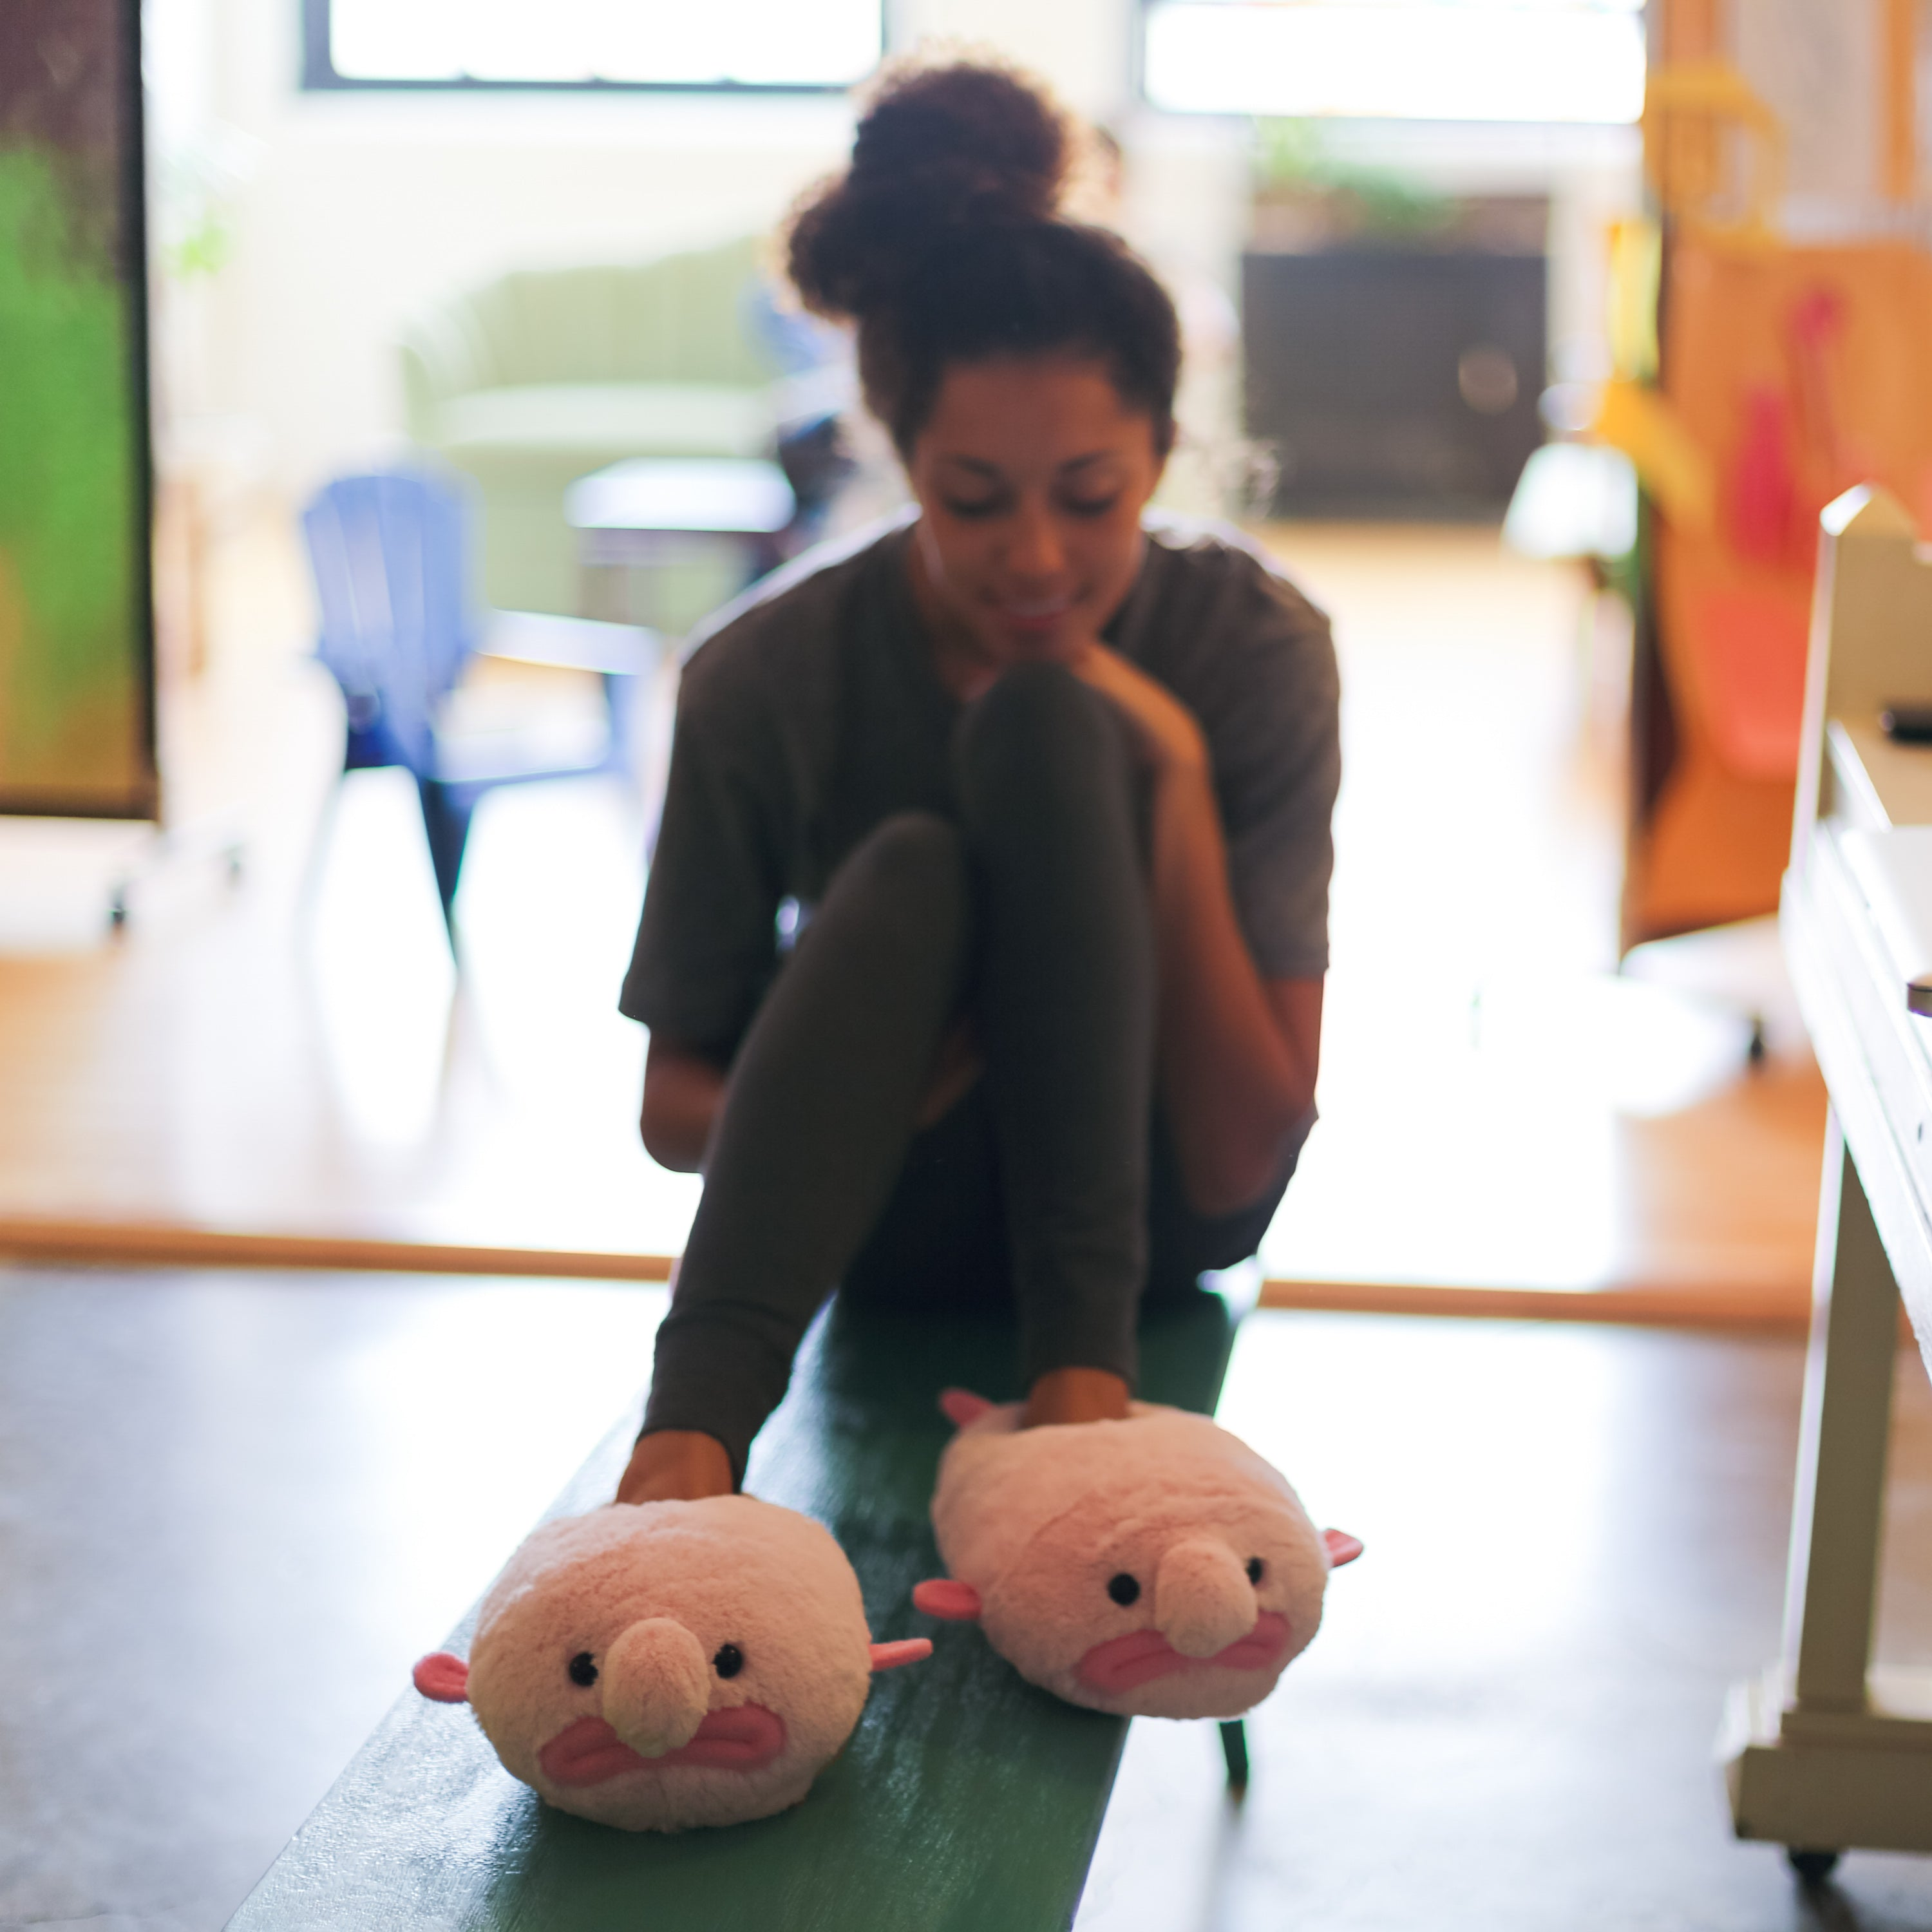 Blobfish slippers on model